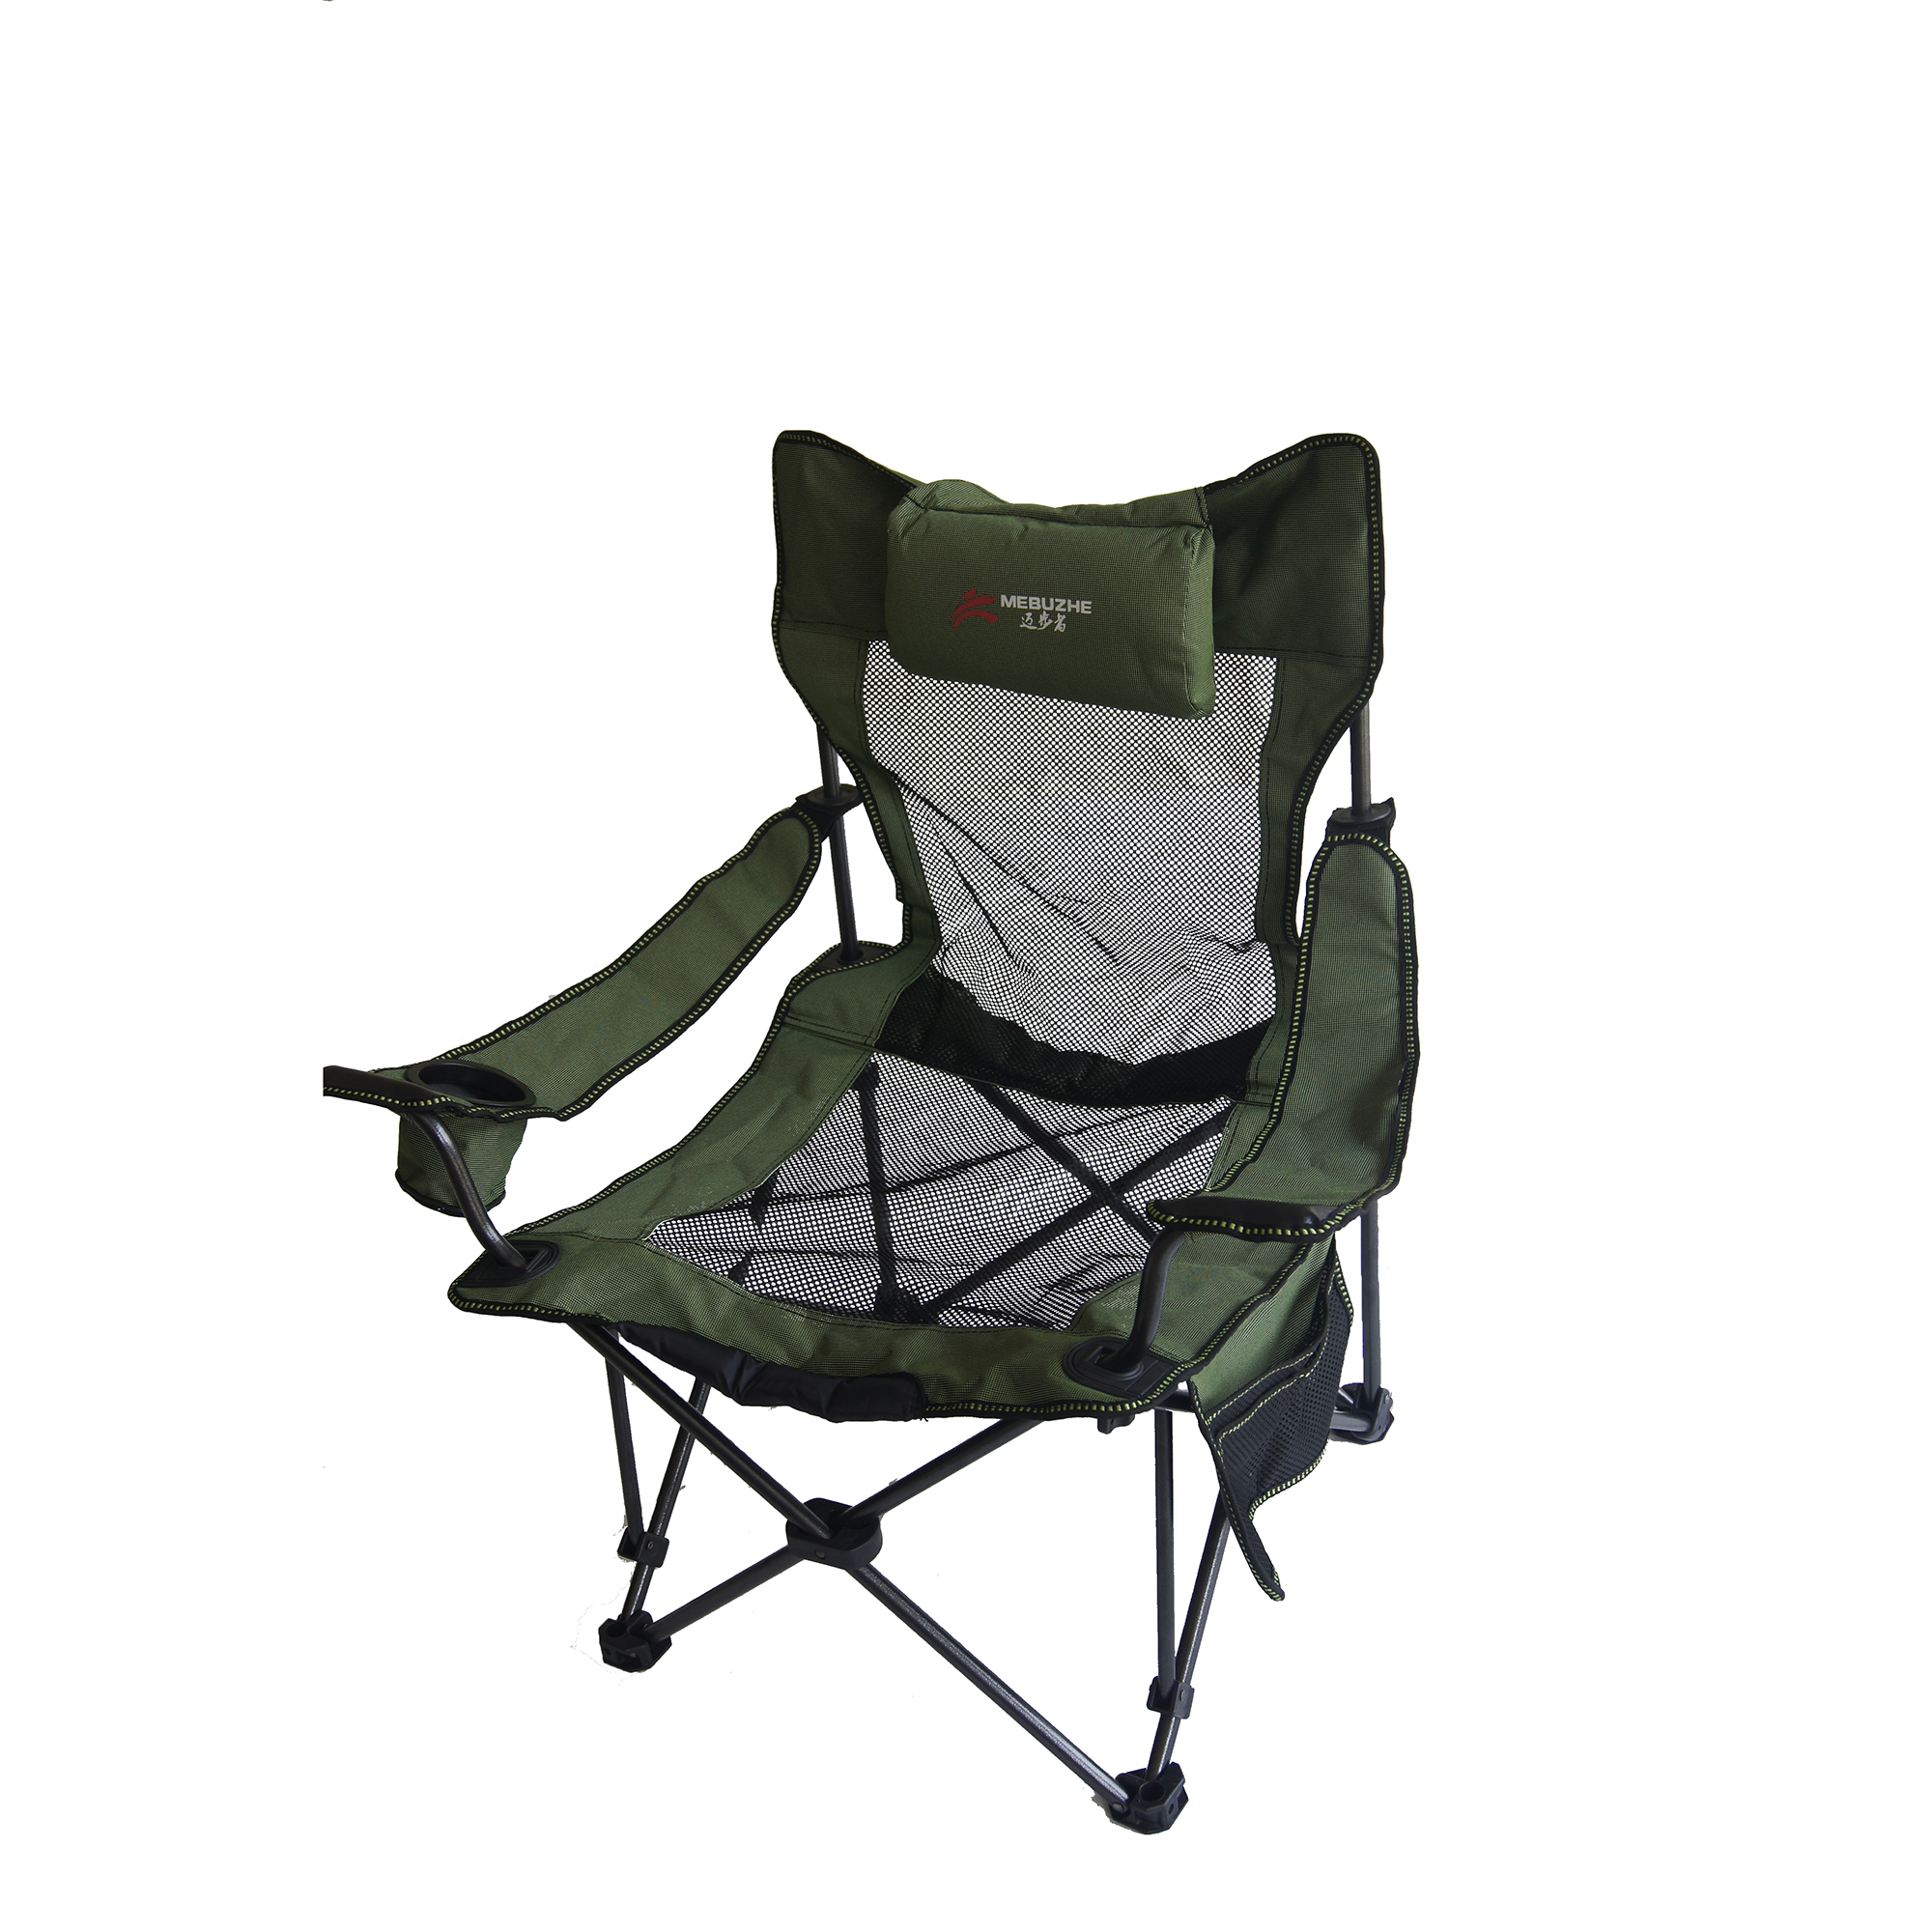 Ore International 35.25 Inch Portable Mesh Folding Green Chair